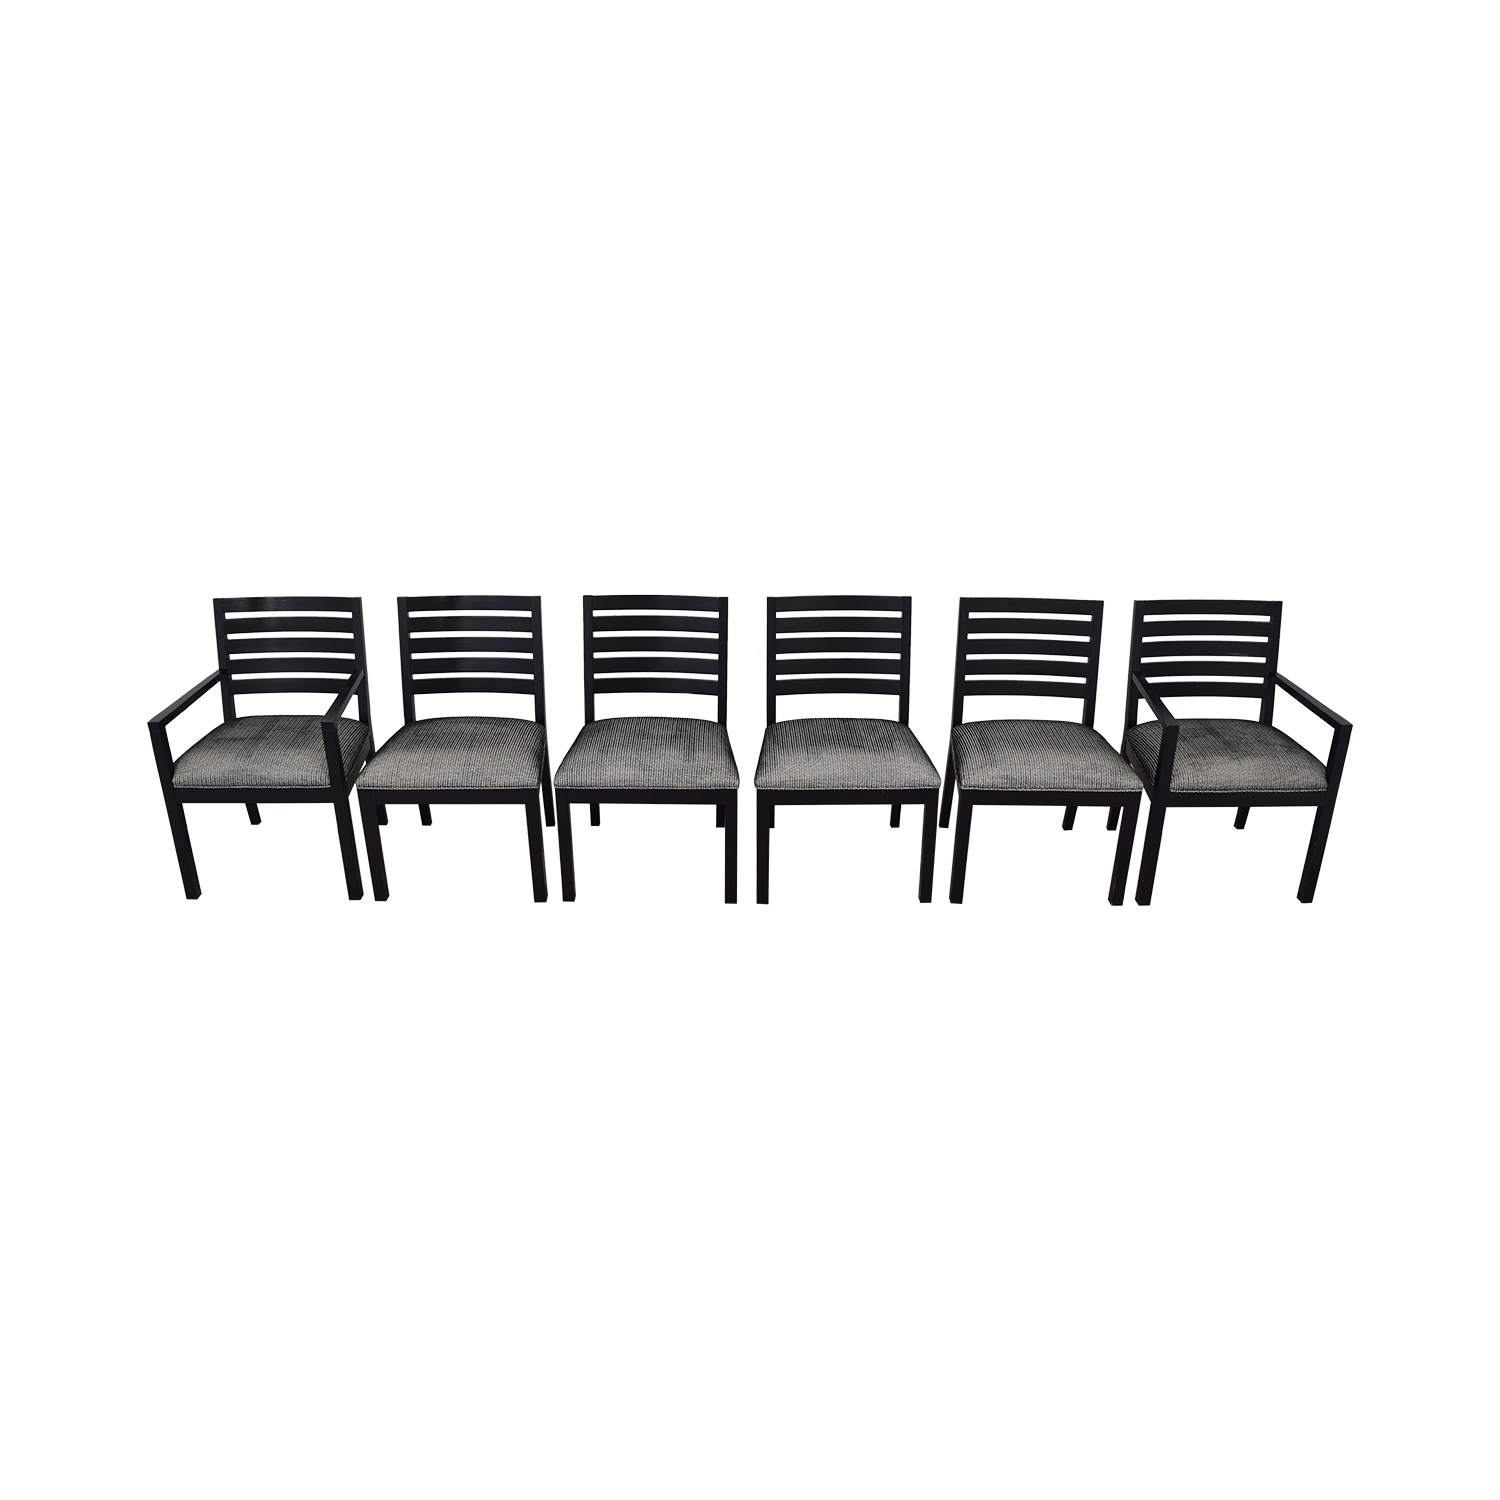 Ethan Allen Ethan Allen Horizontal Slat Dining Chairs nyc